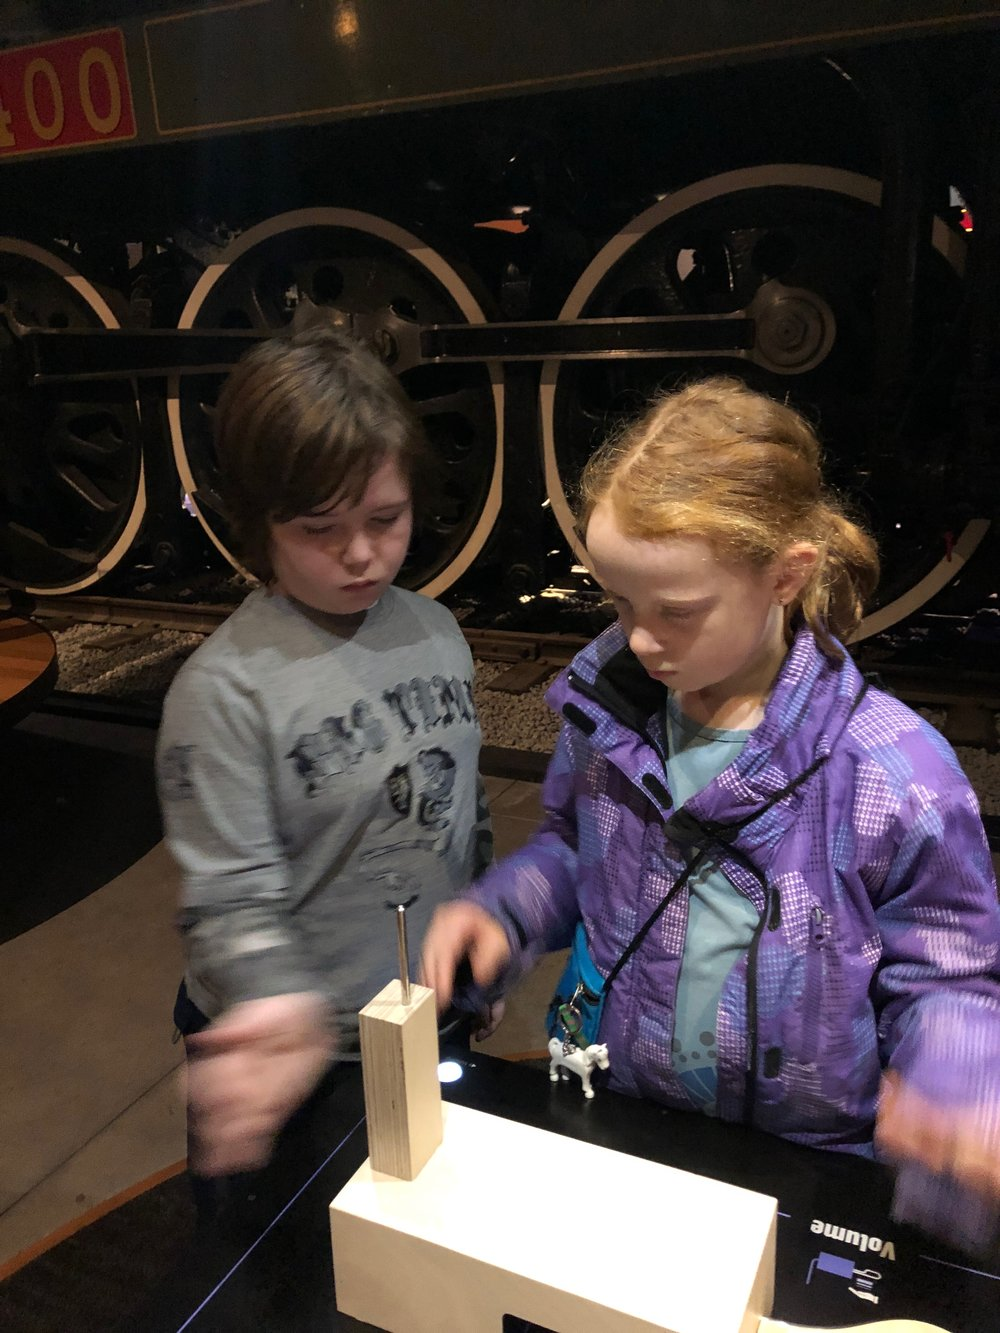 Sound by Design at the Canada Science and Technology Museum